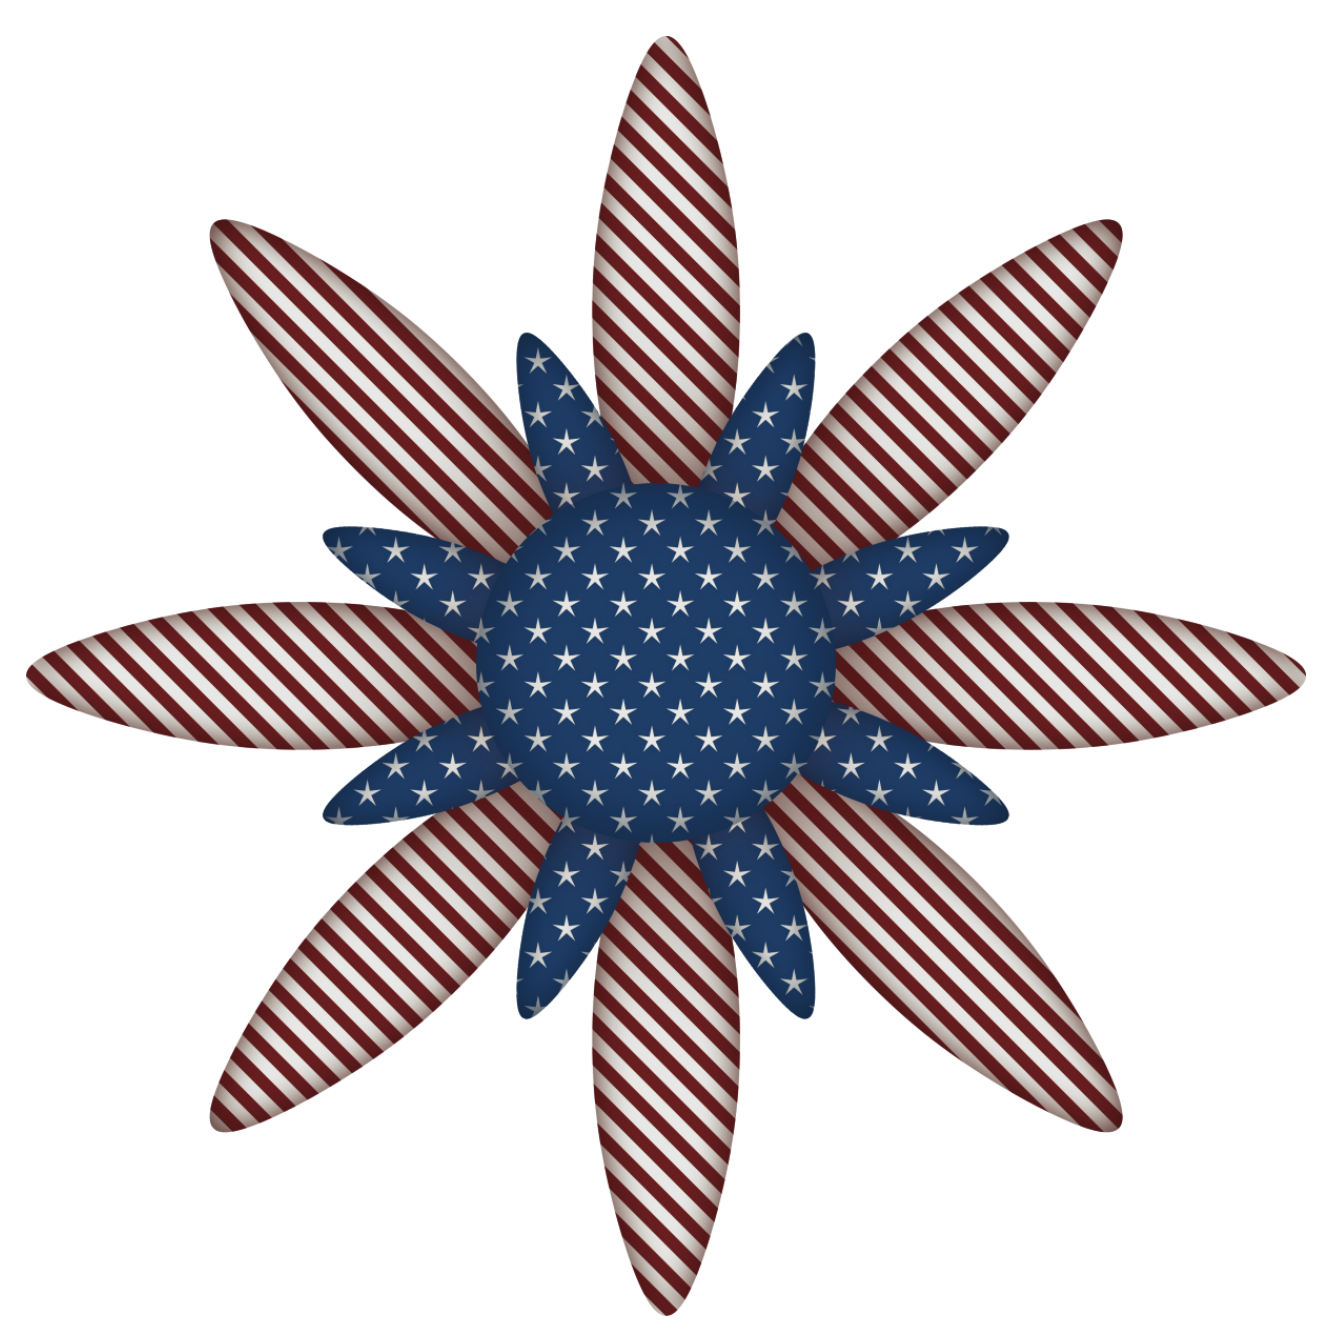 Usa flag flower decoration. Clipart bear patriotic